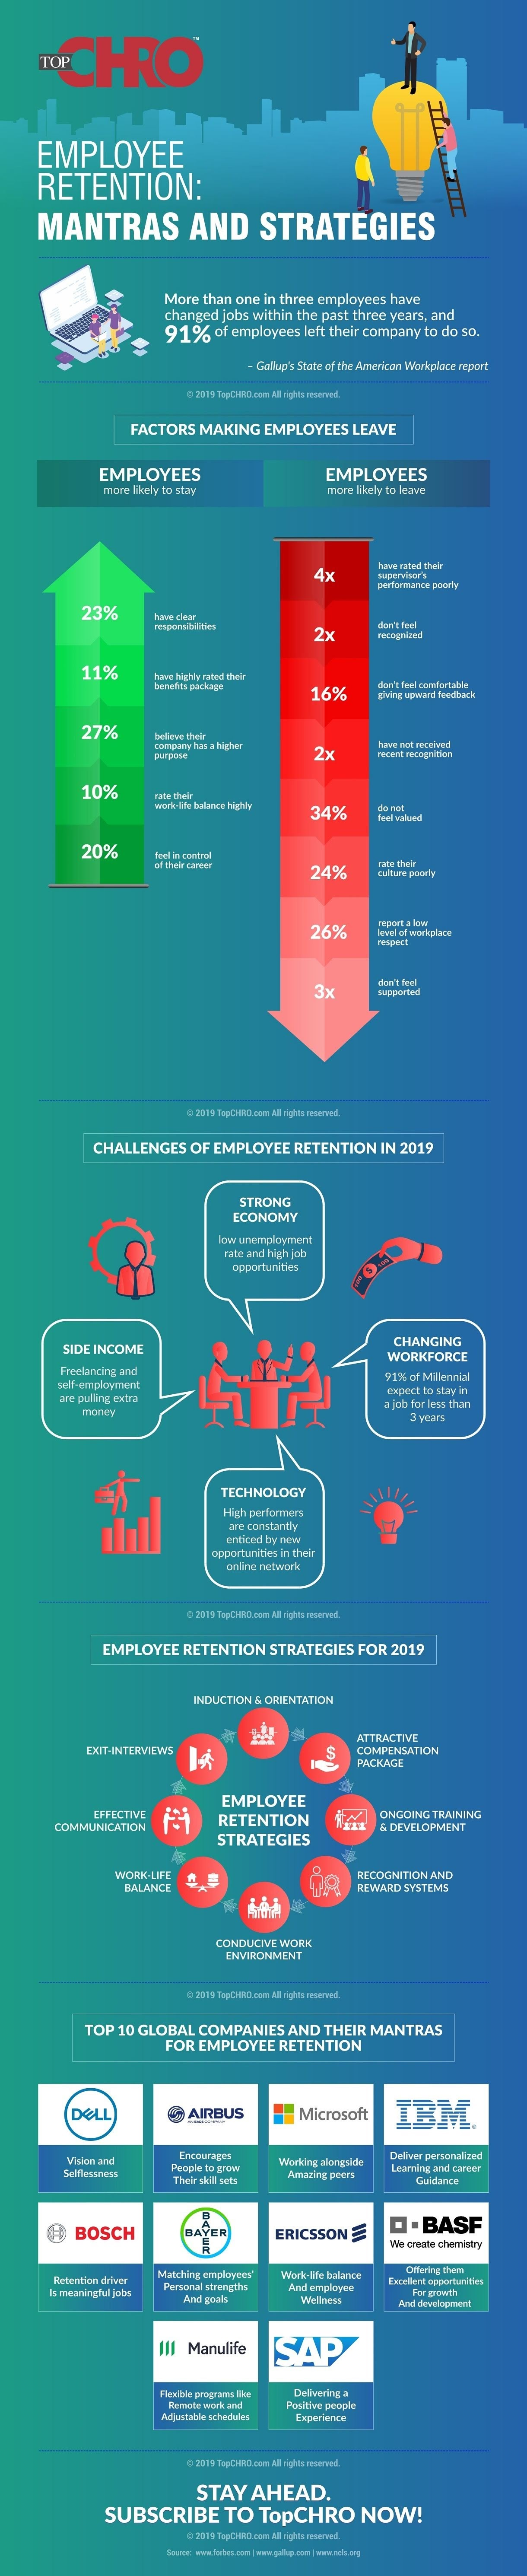 Employee Retention: Mantras and Strategies #infographic